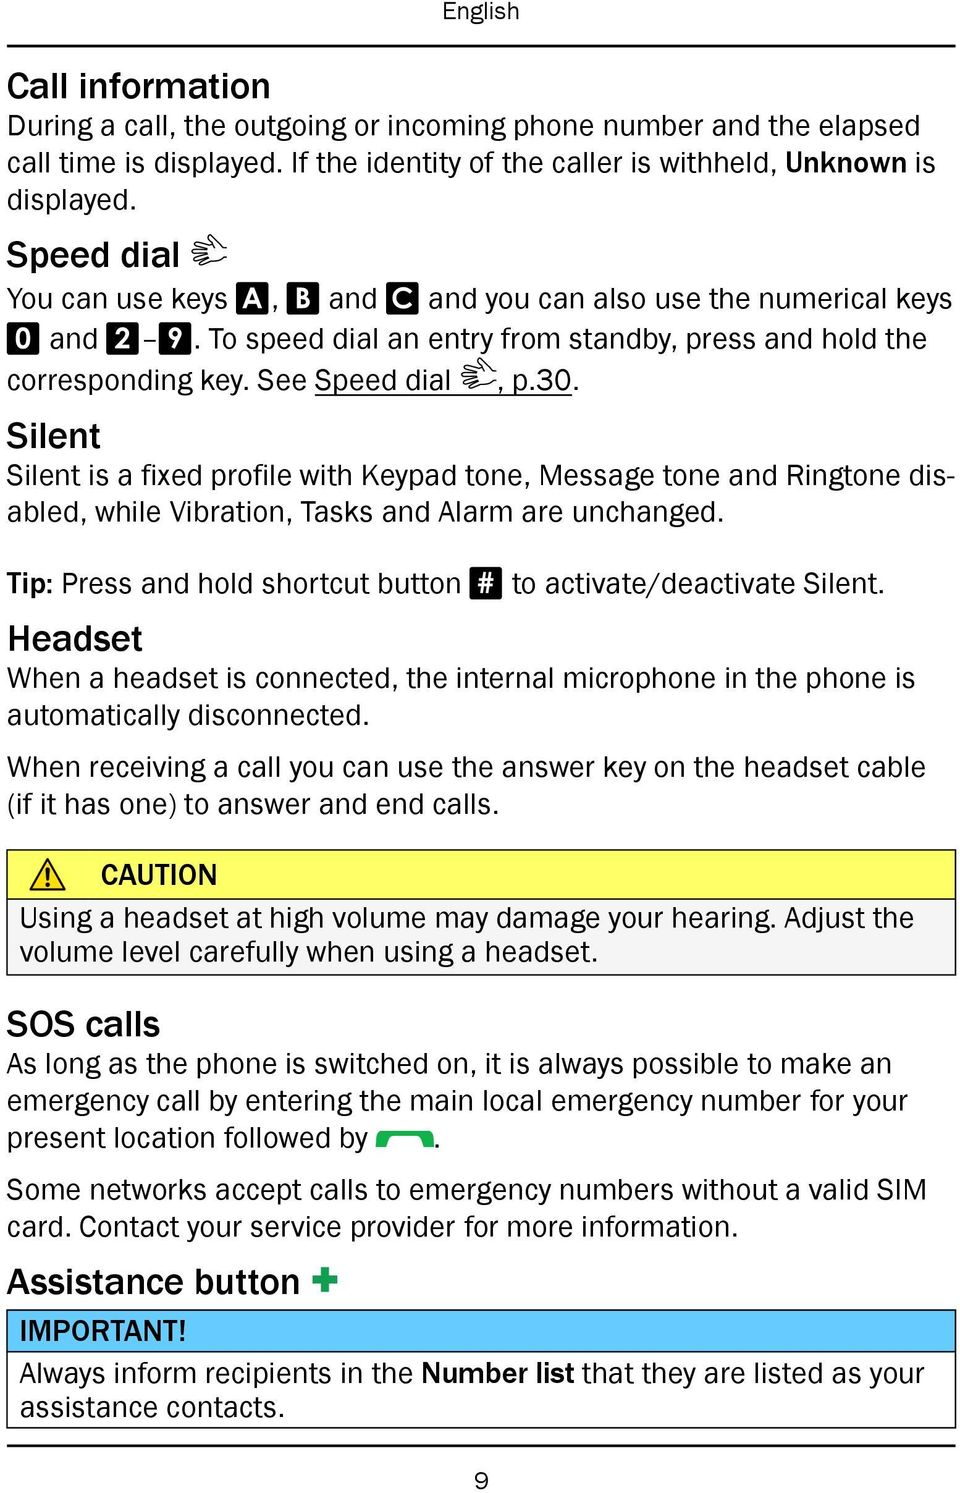 Silent Silent is a fixed profile with Keypad tone, Message tone and Ringtone disabled, while Vibration, Tasks and Alarm are unchanged.